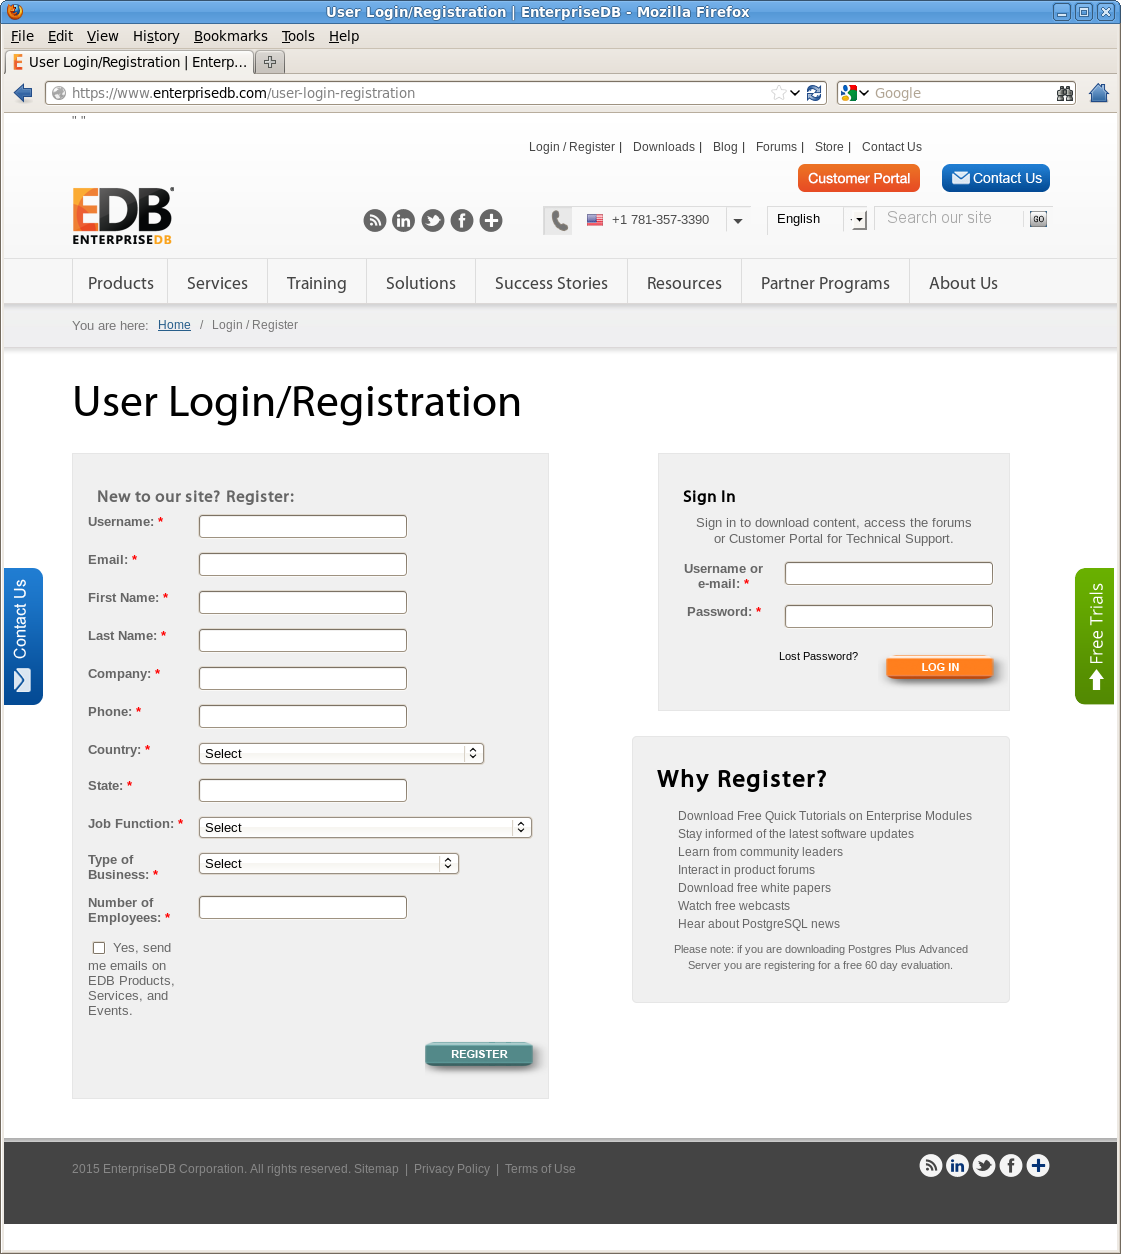 Figure 3.5 - Register as an EnterpriseDB user. You can also access the registration page by navigating to: https://www.enterprisedb.